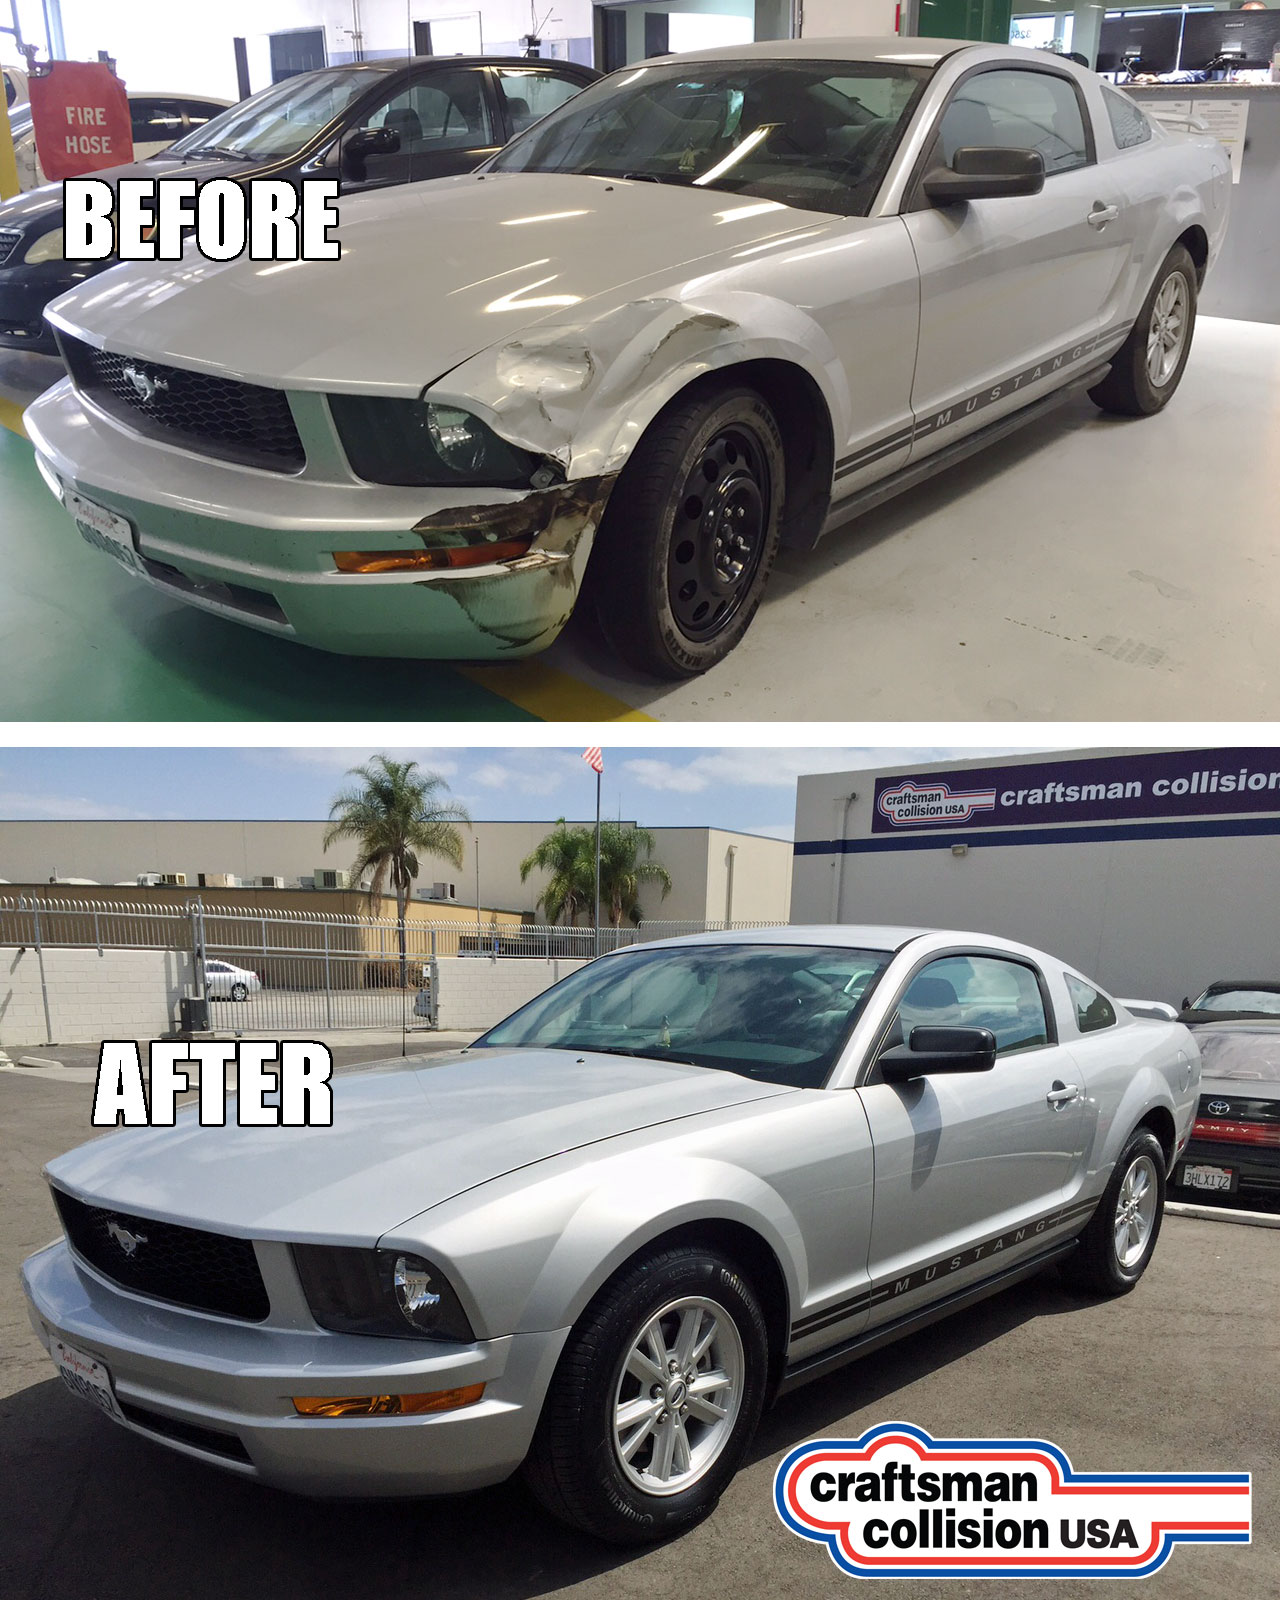 2005 Mustang collision repair